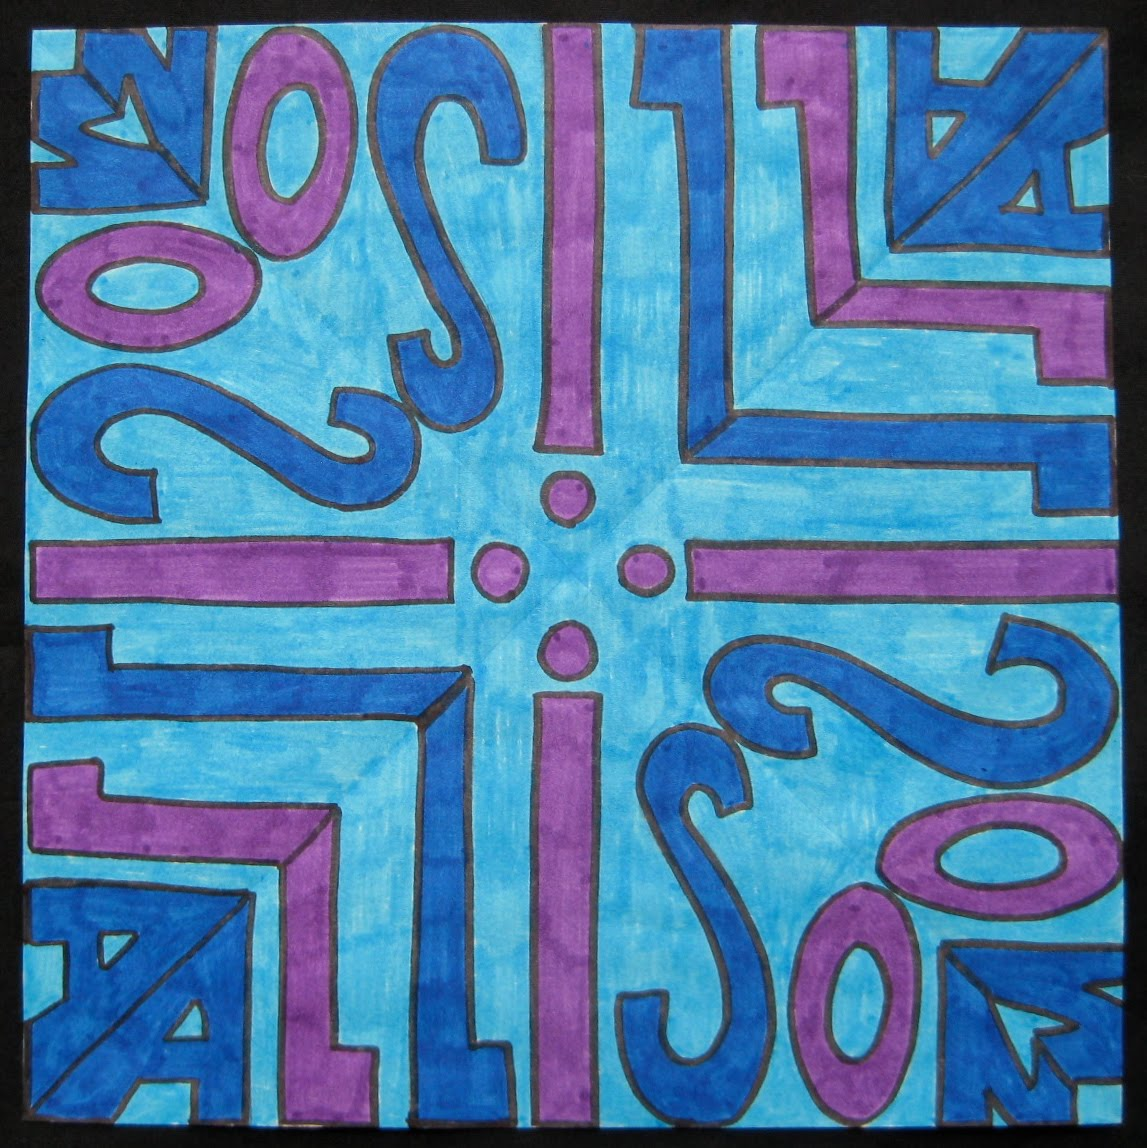 Color art kaleidoscope -  Grade Allison Colored In Cool Colors With Markers The Same Lettering But Traced Only Four Times Instead Of Eight